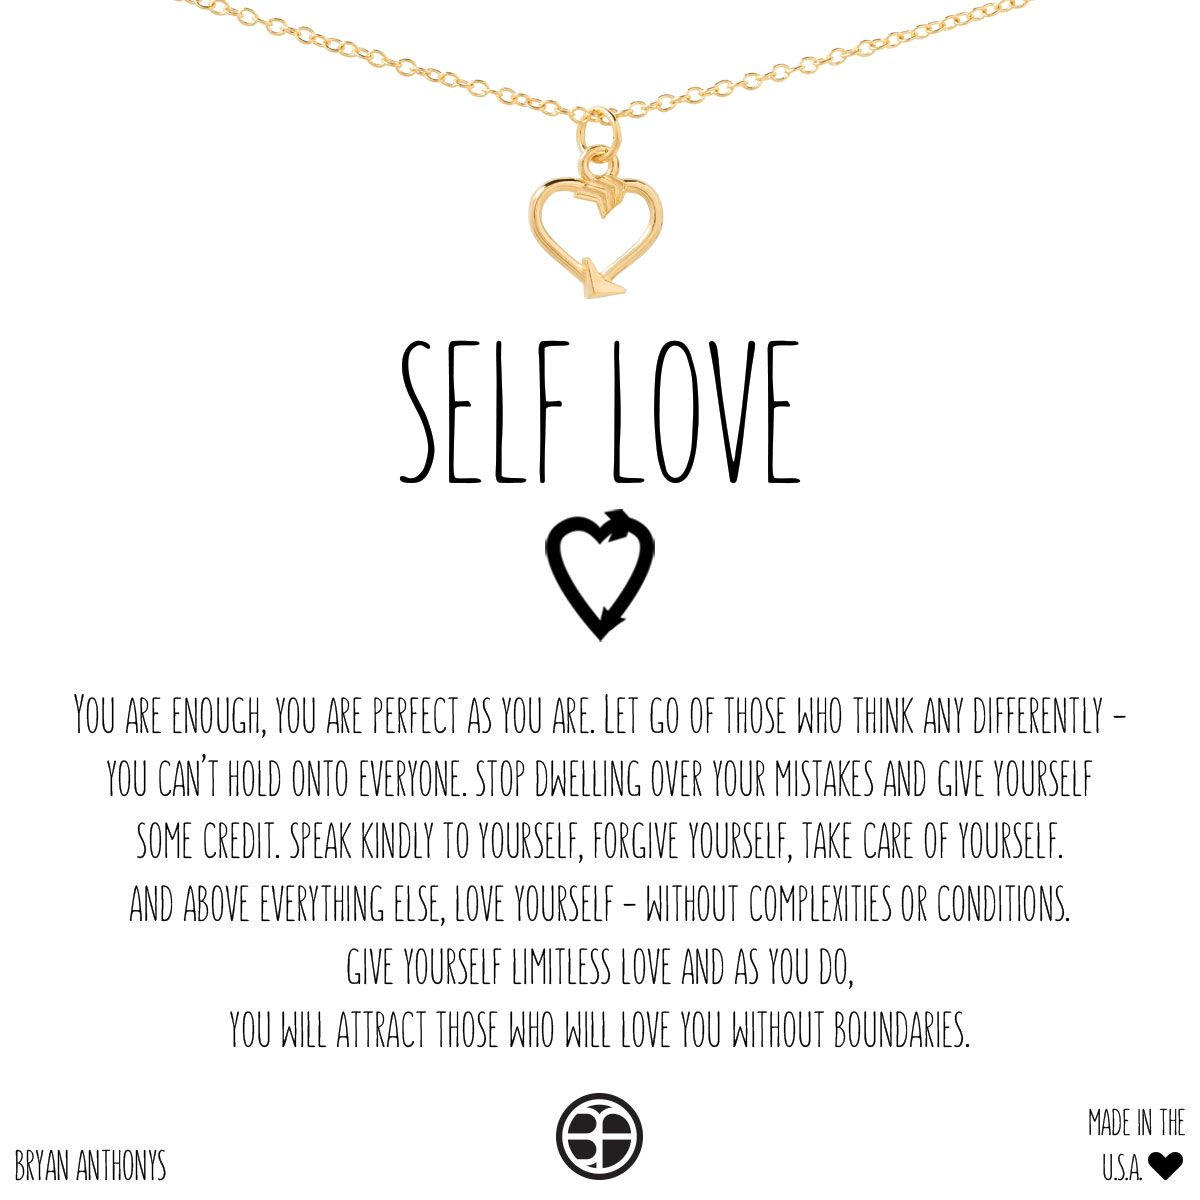 25862ff13c26 Bryan Anthonys Dainty Self Love necklace. A delicate arrow transforms into  a heart and is strung elegantly on a dainty chain. The arrow is  thoughtfully ...